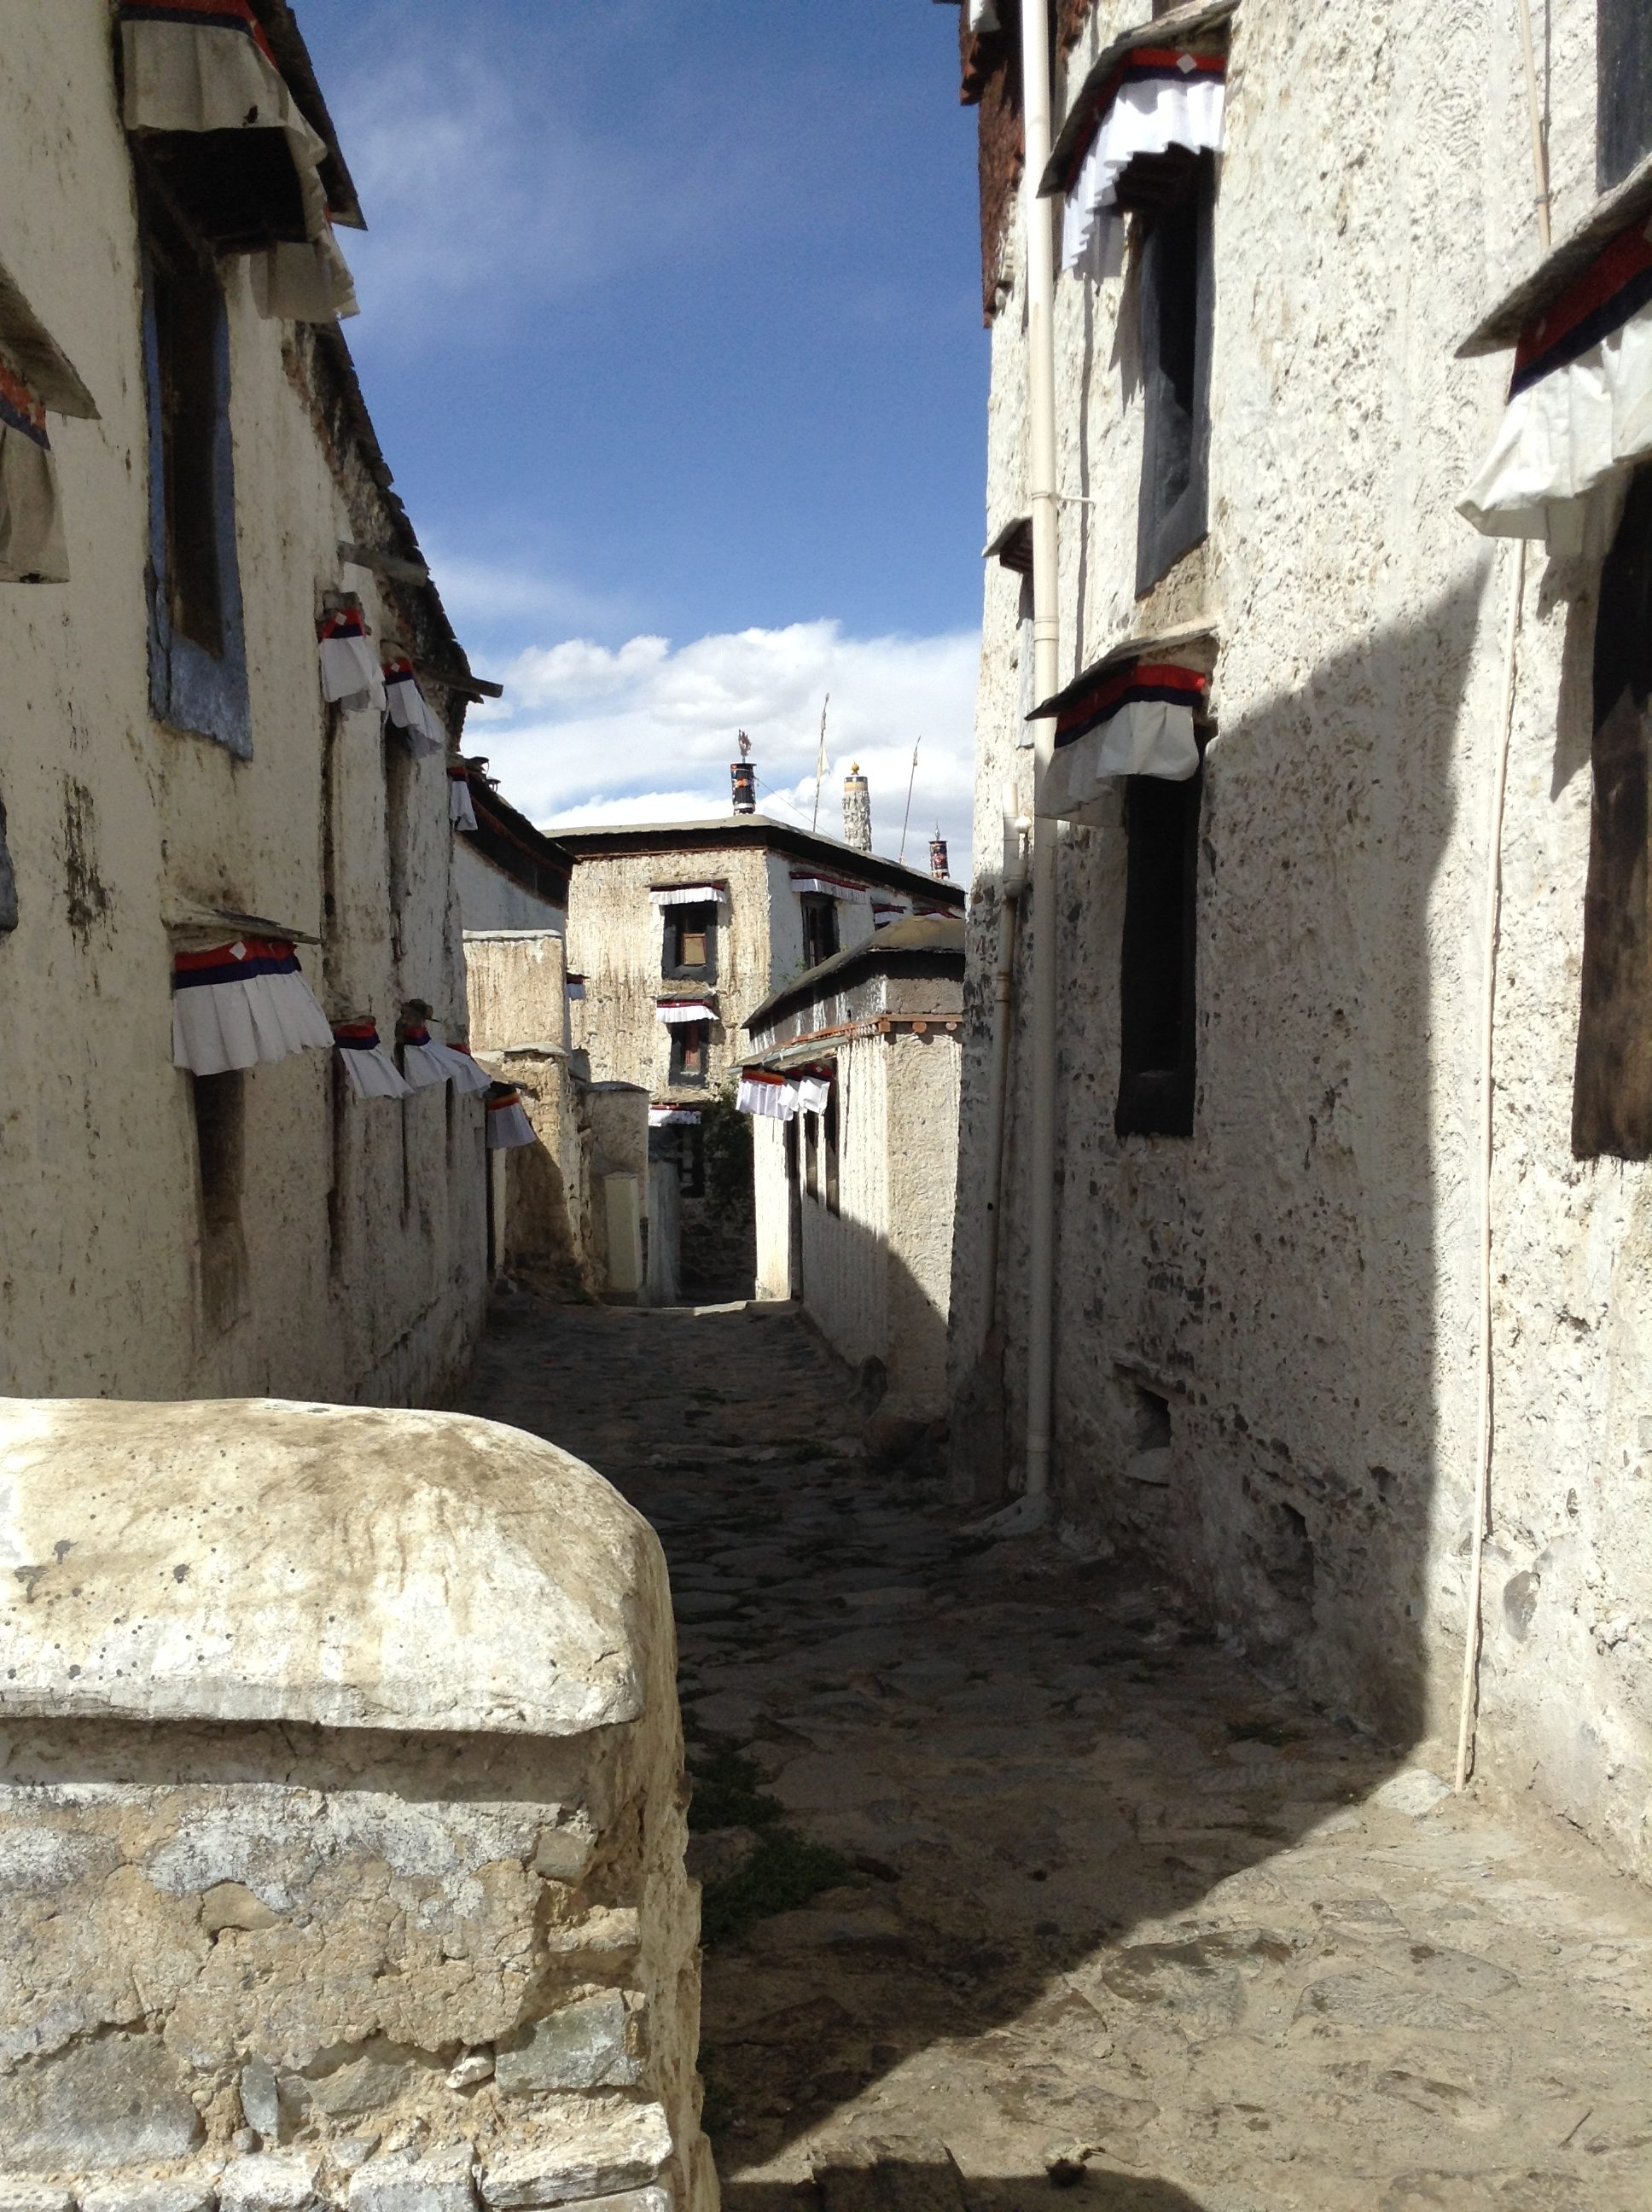 Traditional, ancient buildings in Tibet